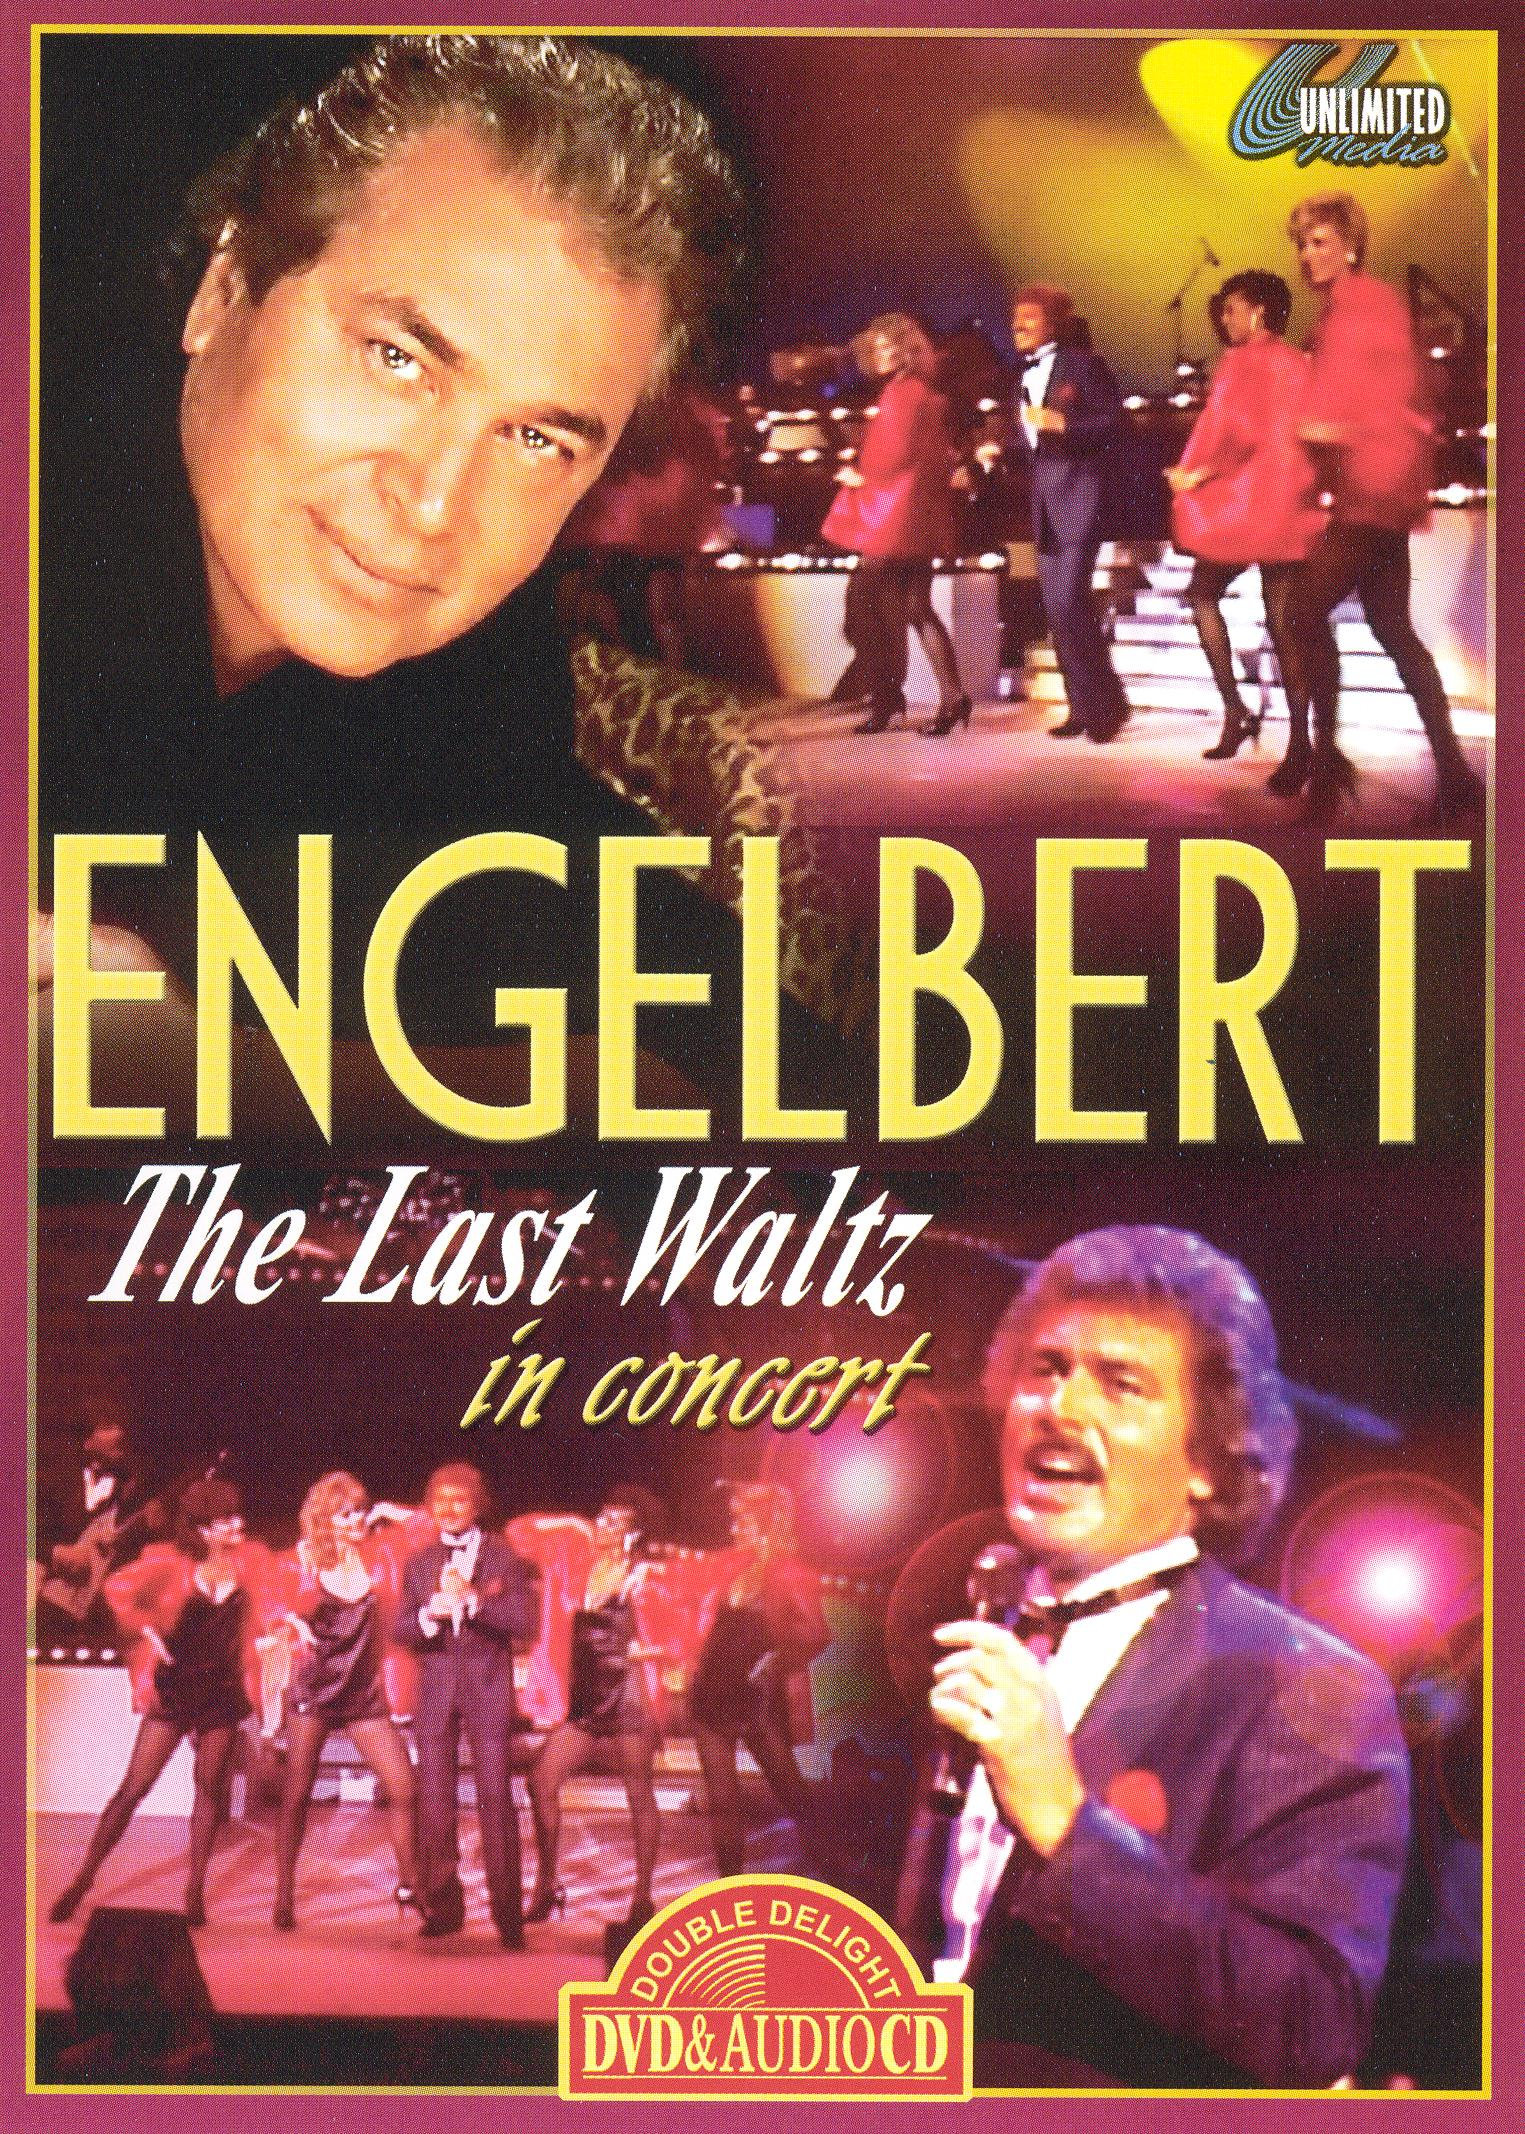 Engelbert Humperdinck: The Last Waltz - In Concert